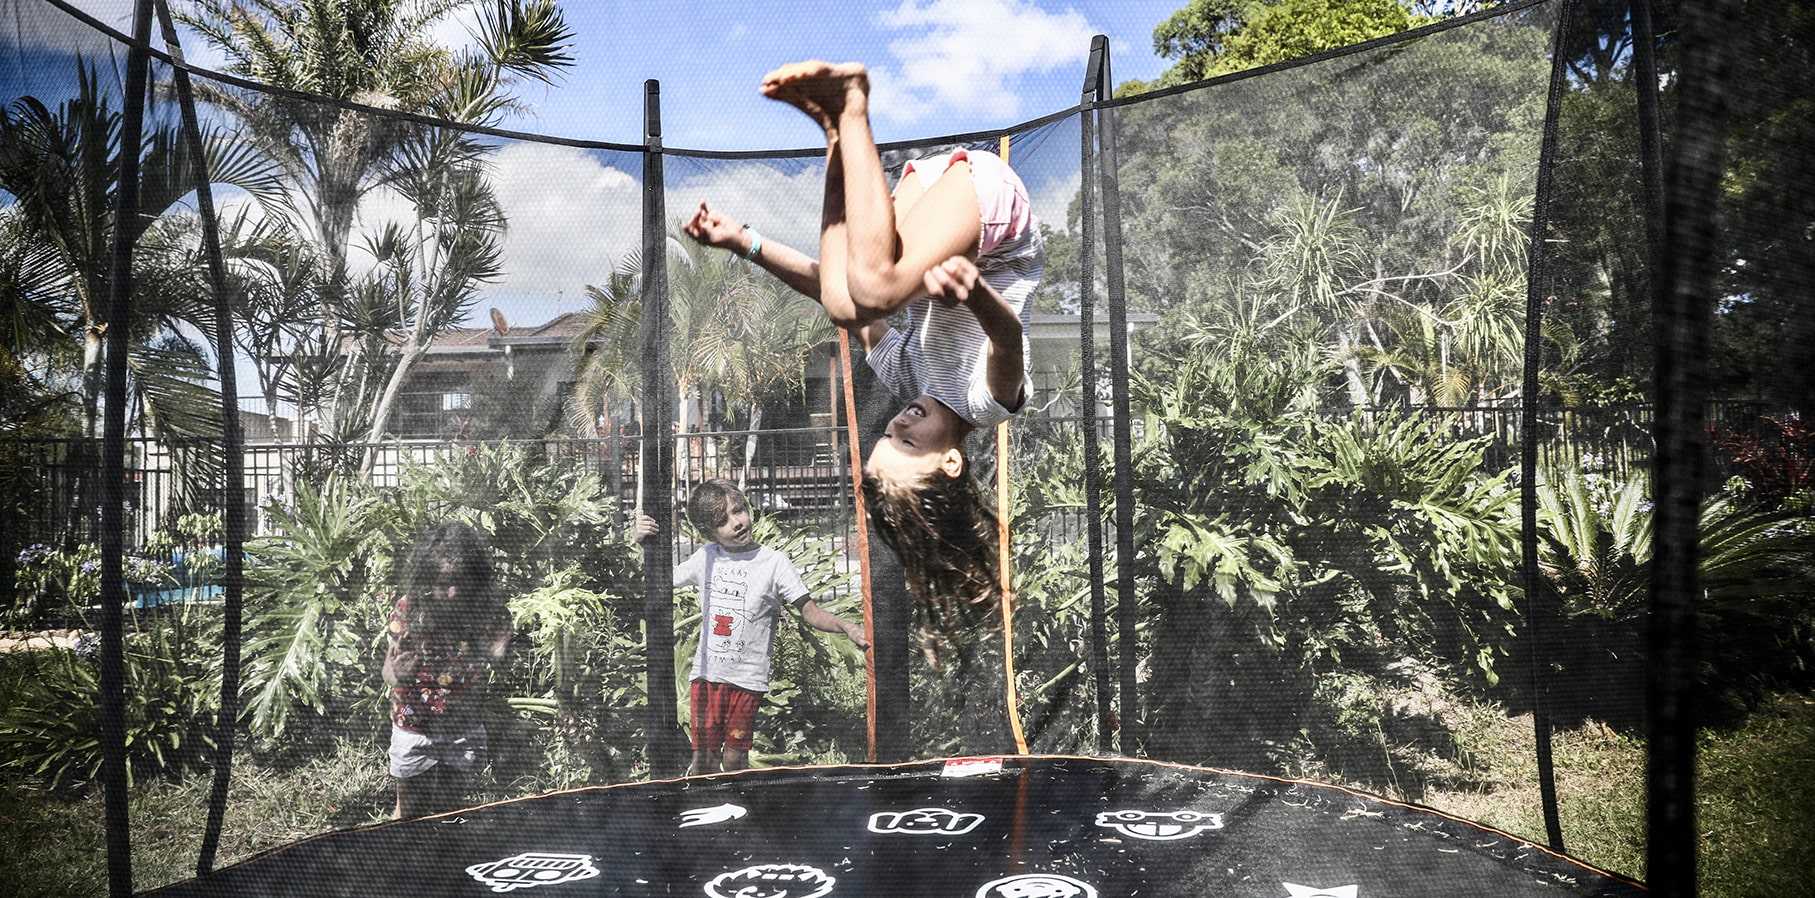 Girl jumping on a Thunder Pro trampoline